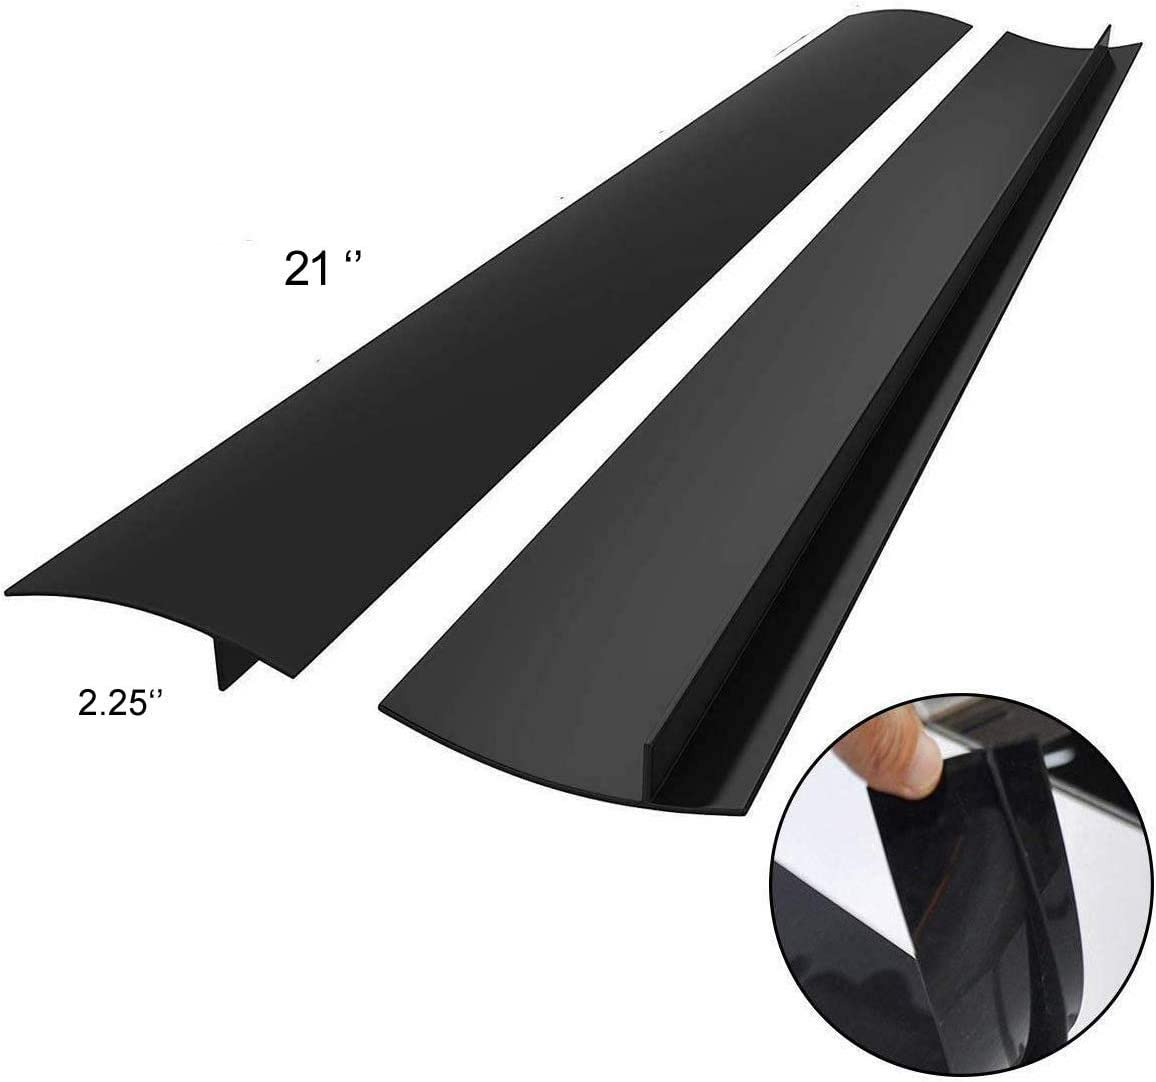 Silicone Stove Counter Gap Cover Heat Resistance Easy to Clean Long and Wide Gap Filler Seal the Gap Next to your Stove Stove Top,Dryer Leaks,Washing Machine, Oven,Washer, Set of 2(Black)